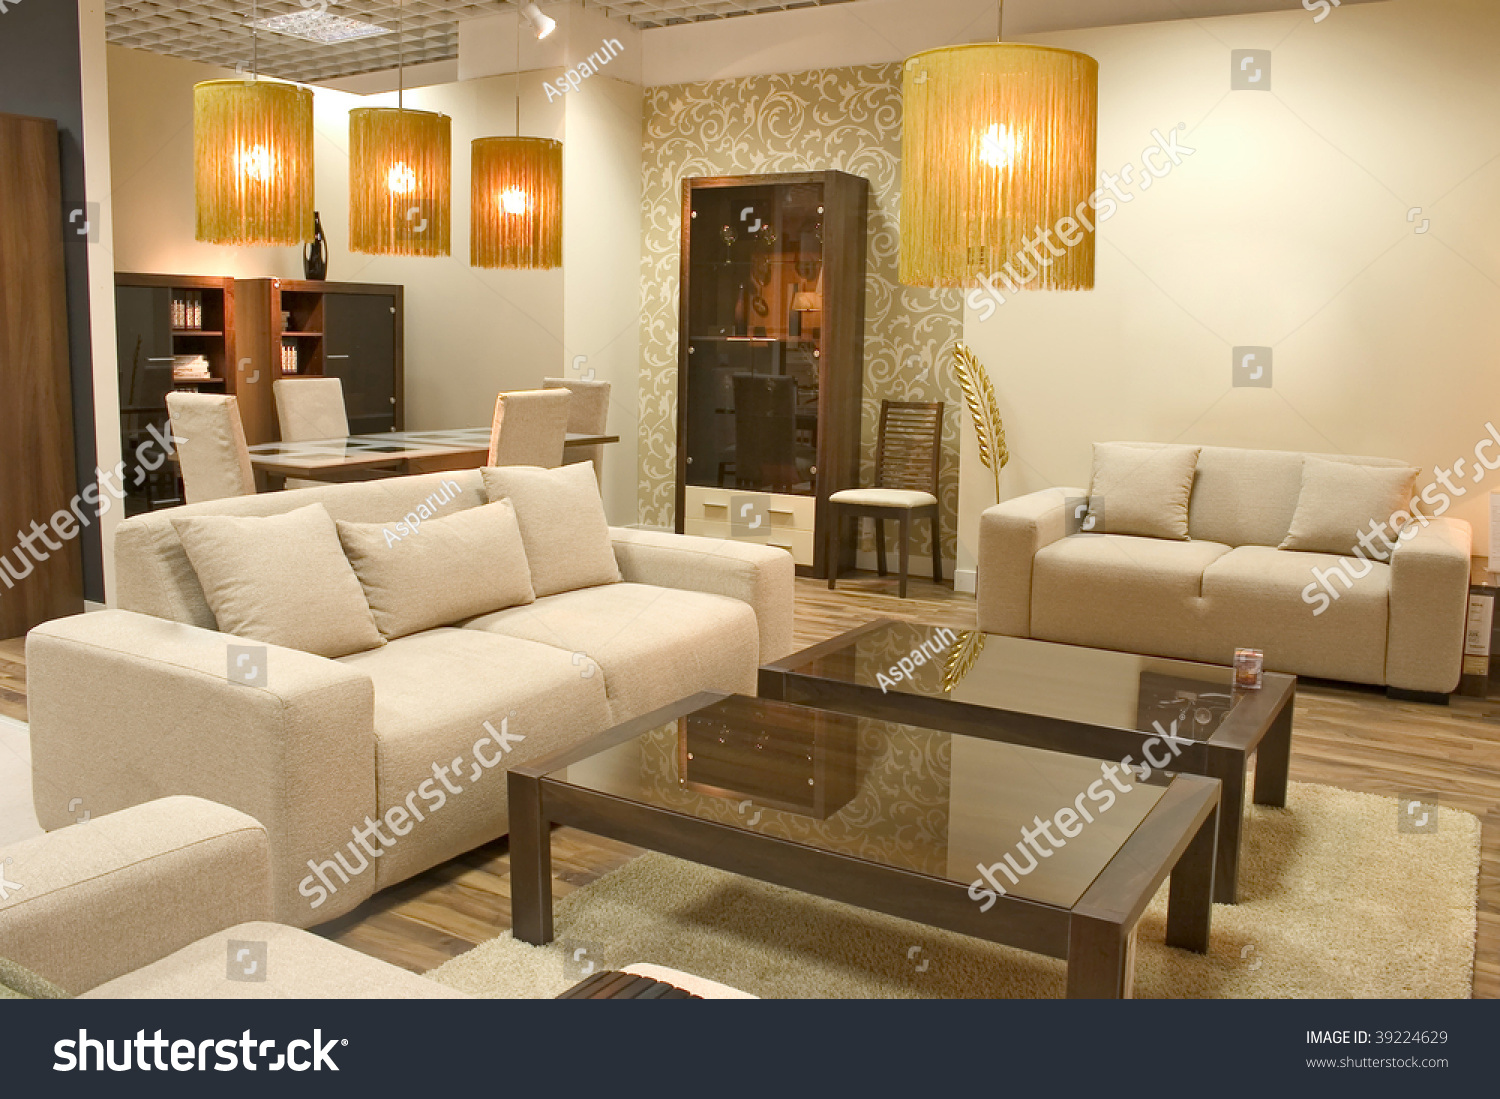 Warm Colors For A Living Room Modern Living Room With Warm Colors Two Big Sofas And A Caffee